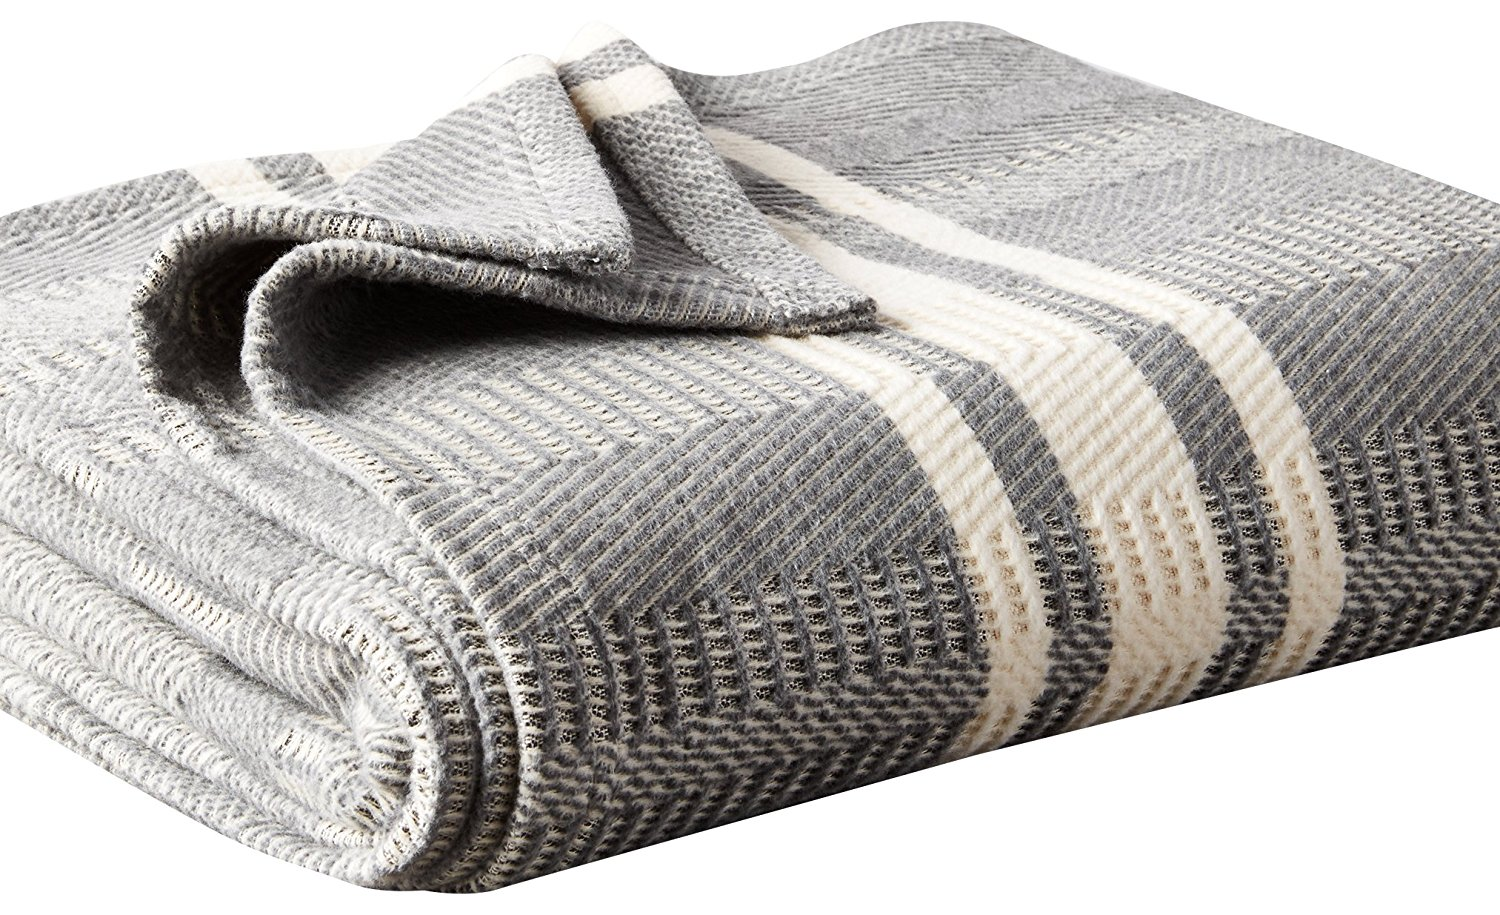 Curl up under this organic cotton blanket while opening up the rest of your presents on Christmas morning.